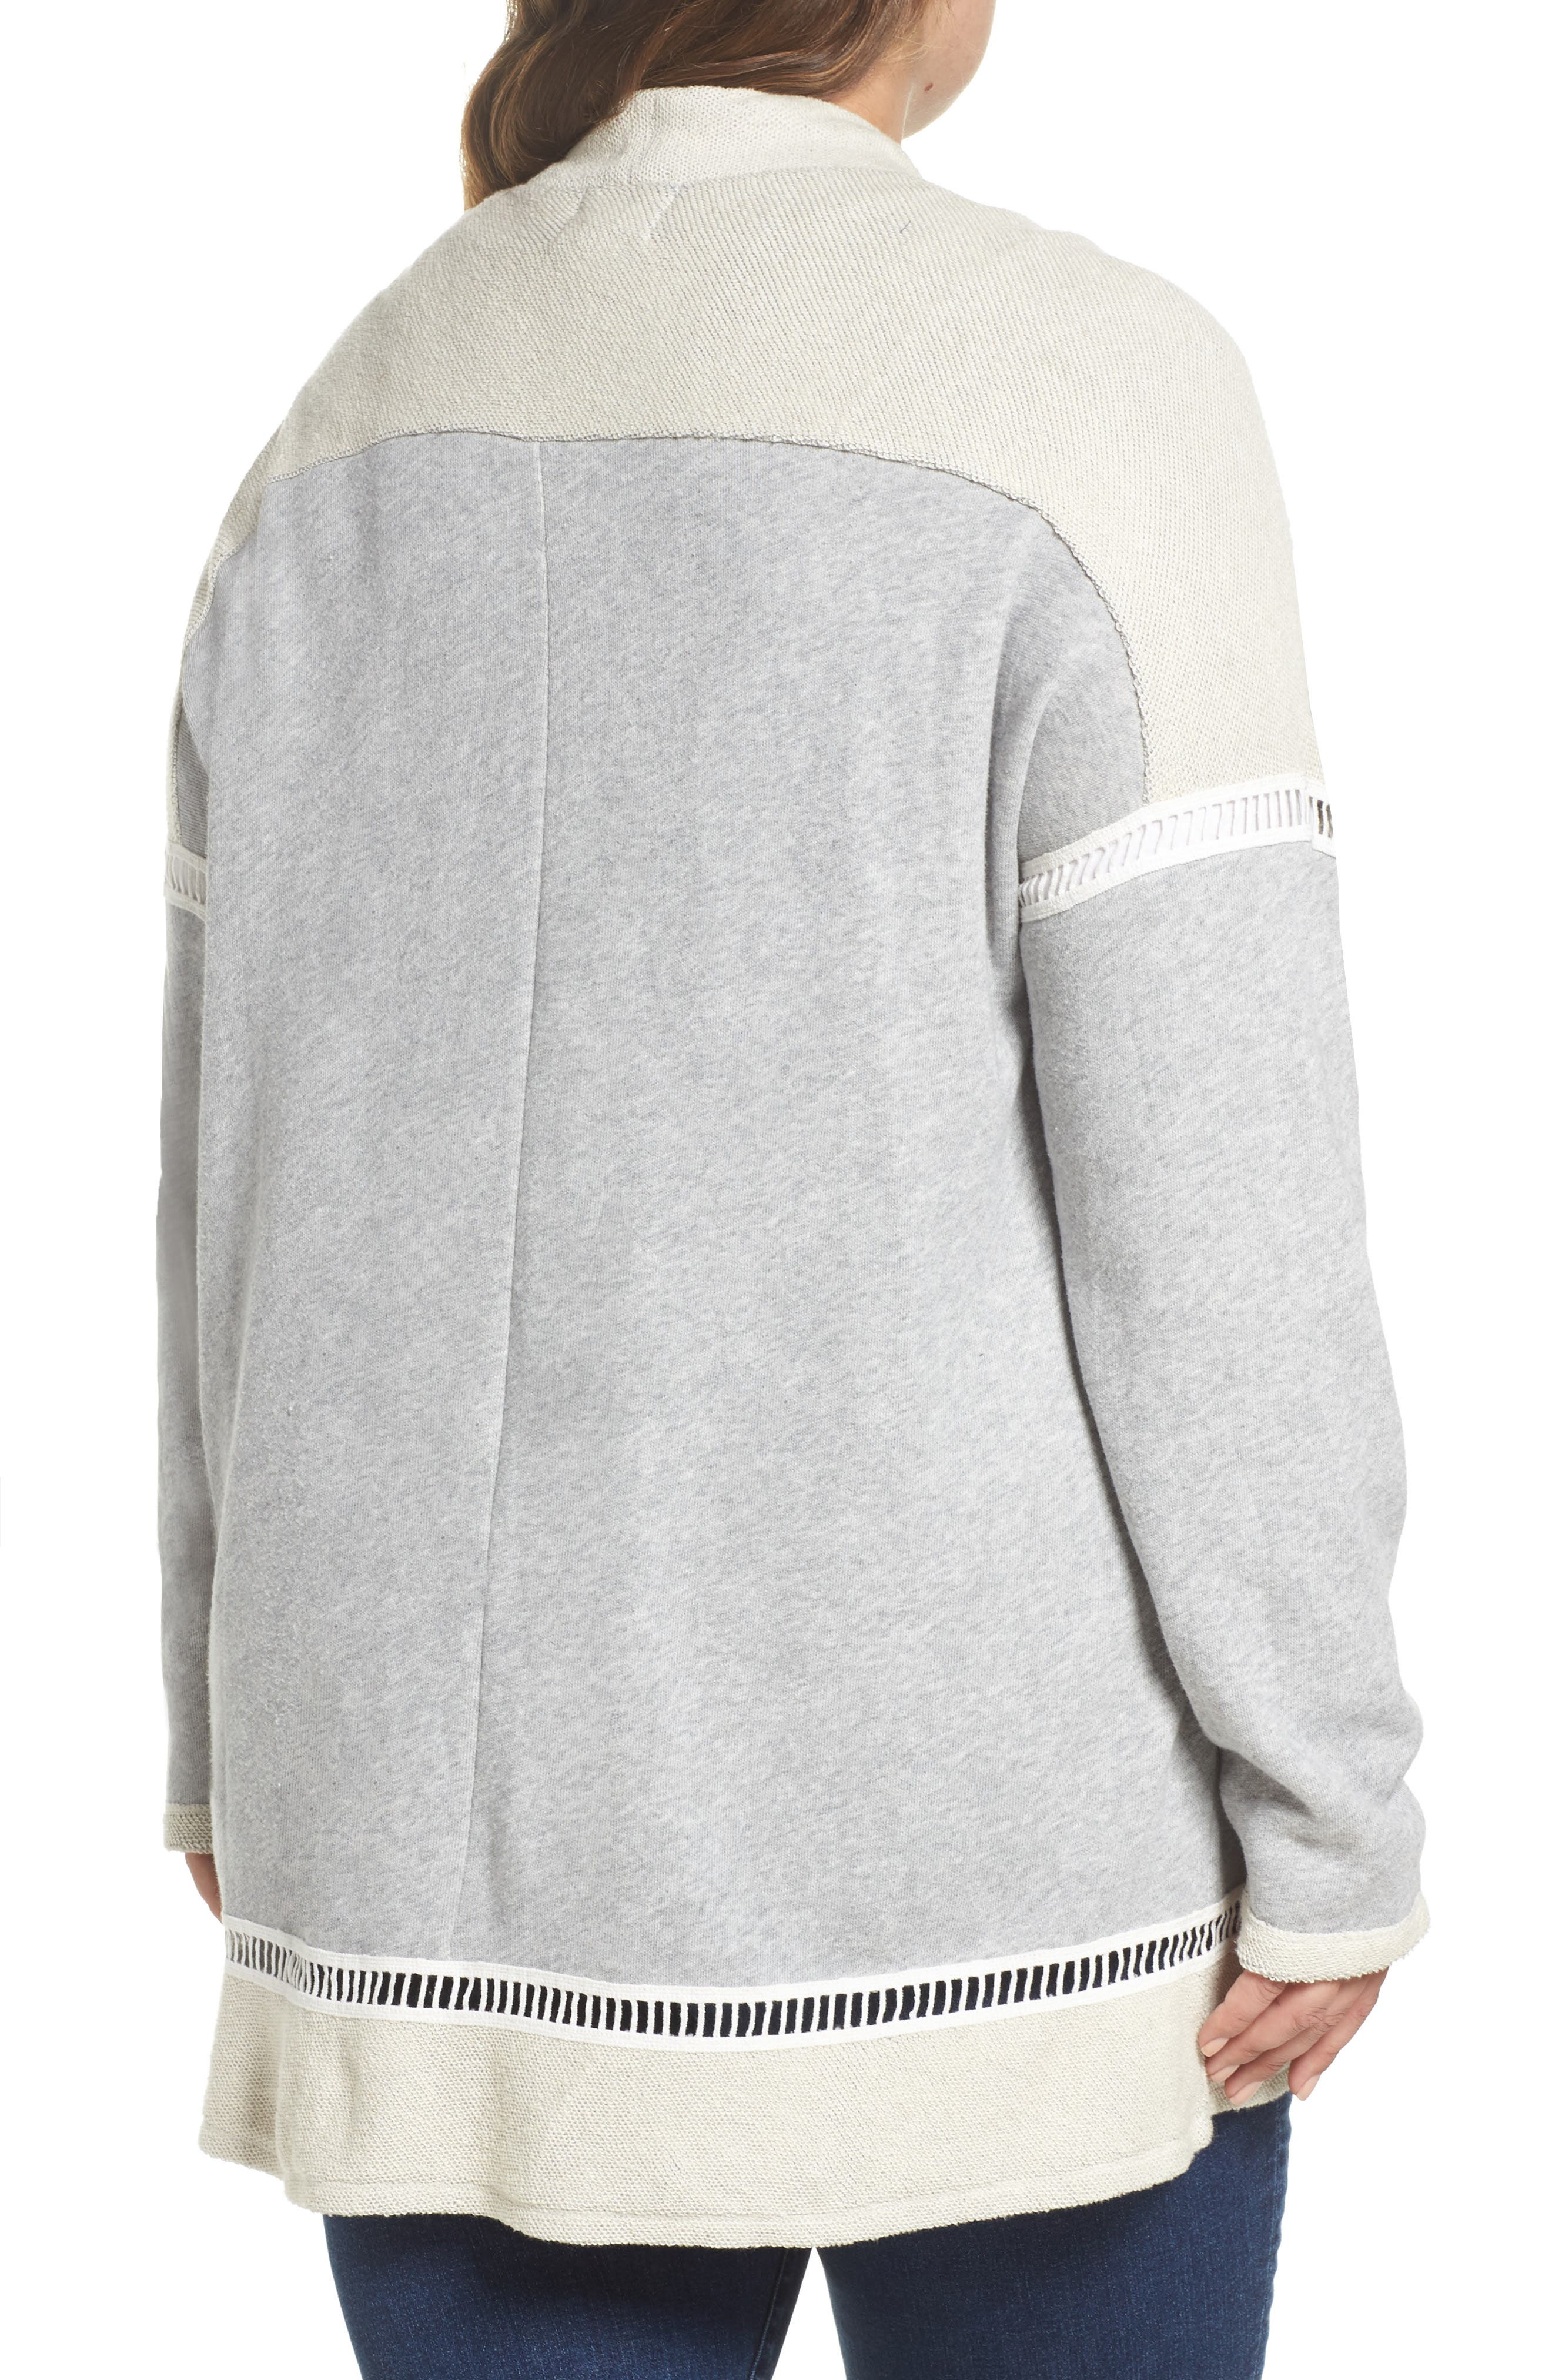 French Terry Cardigan,                             Alternate thumbnail 2, color,                             Grey Heather